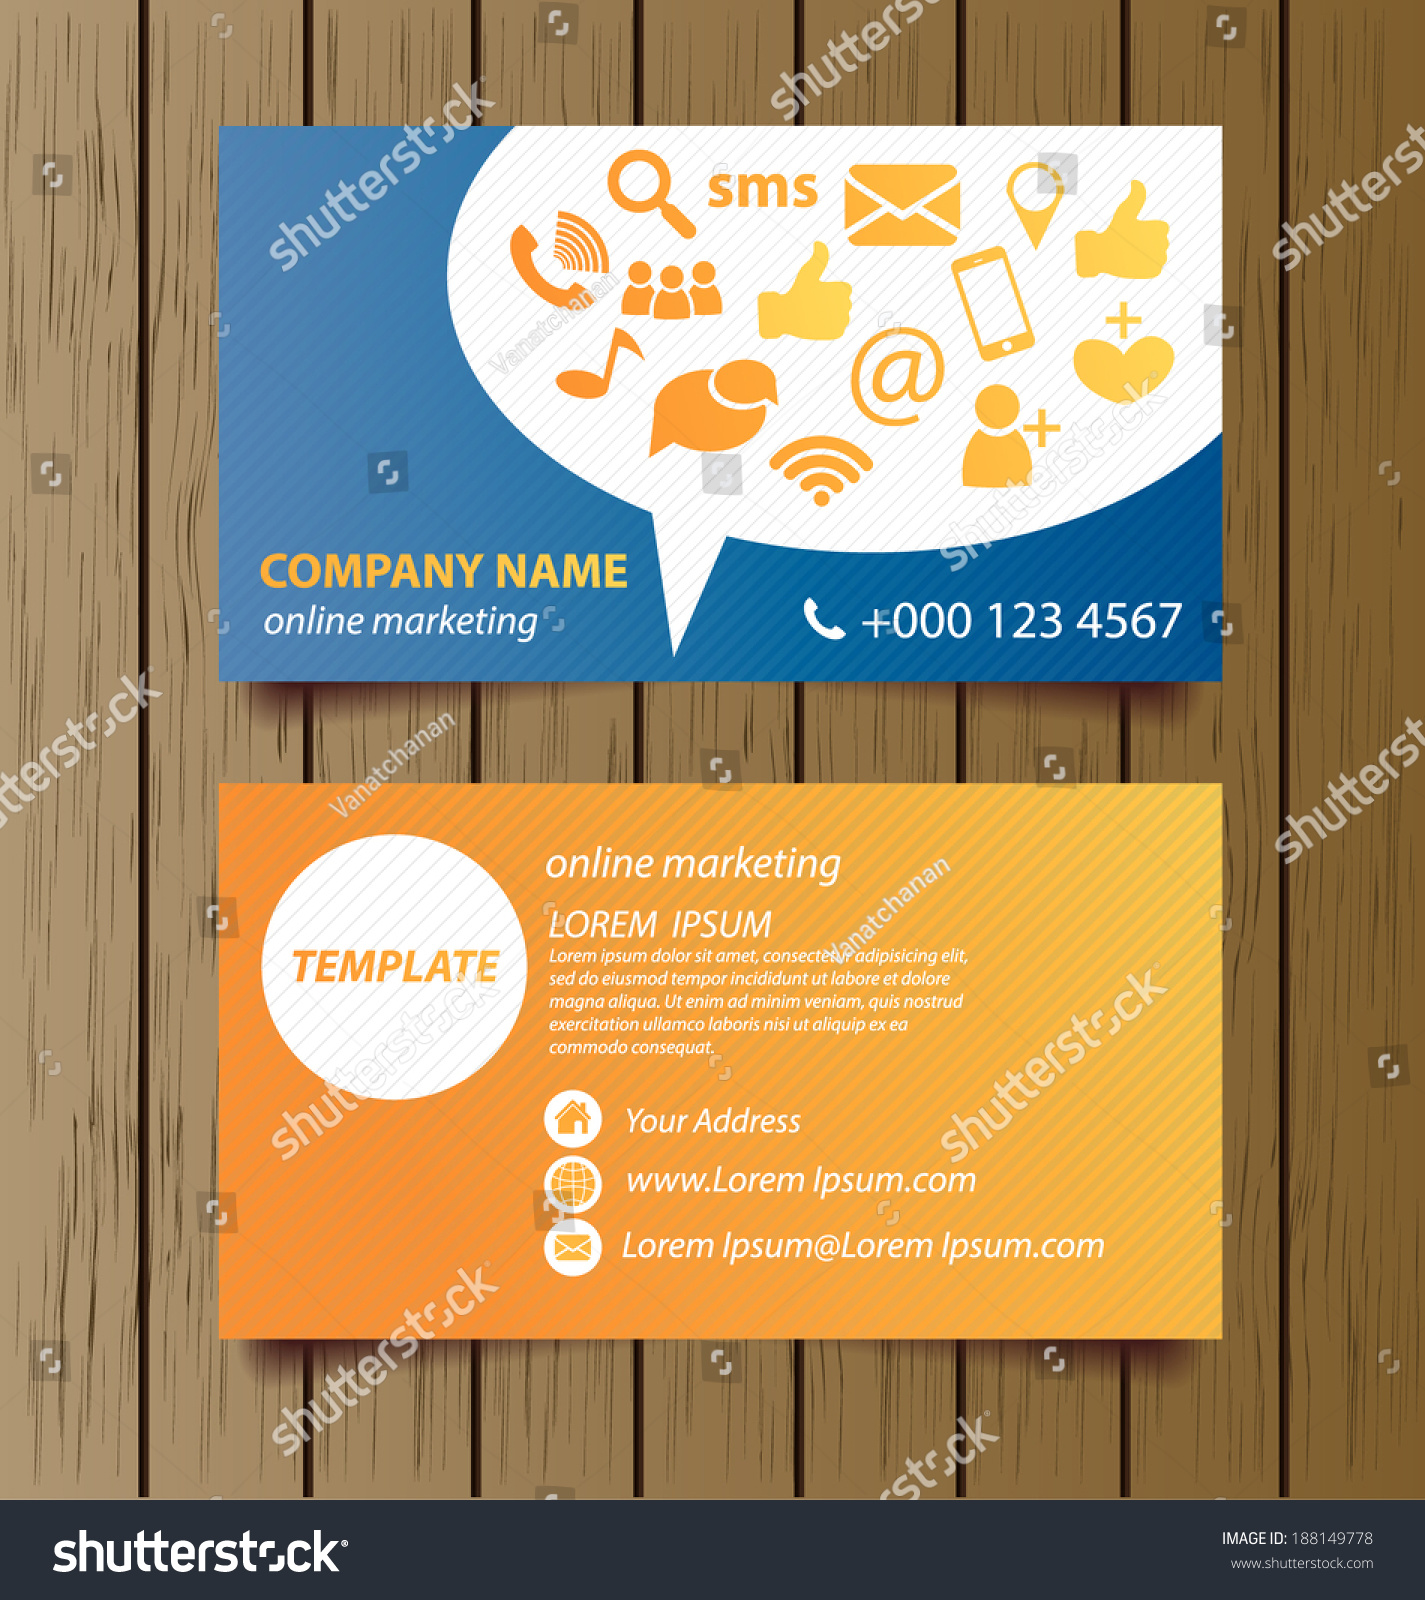 Business card template online marketing vector stock vector royalty business card template for online marketing vector illustration friedricerecipe Choice Image